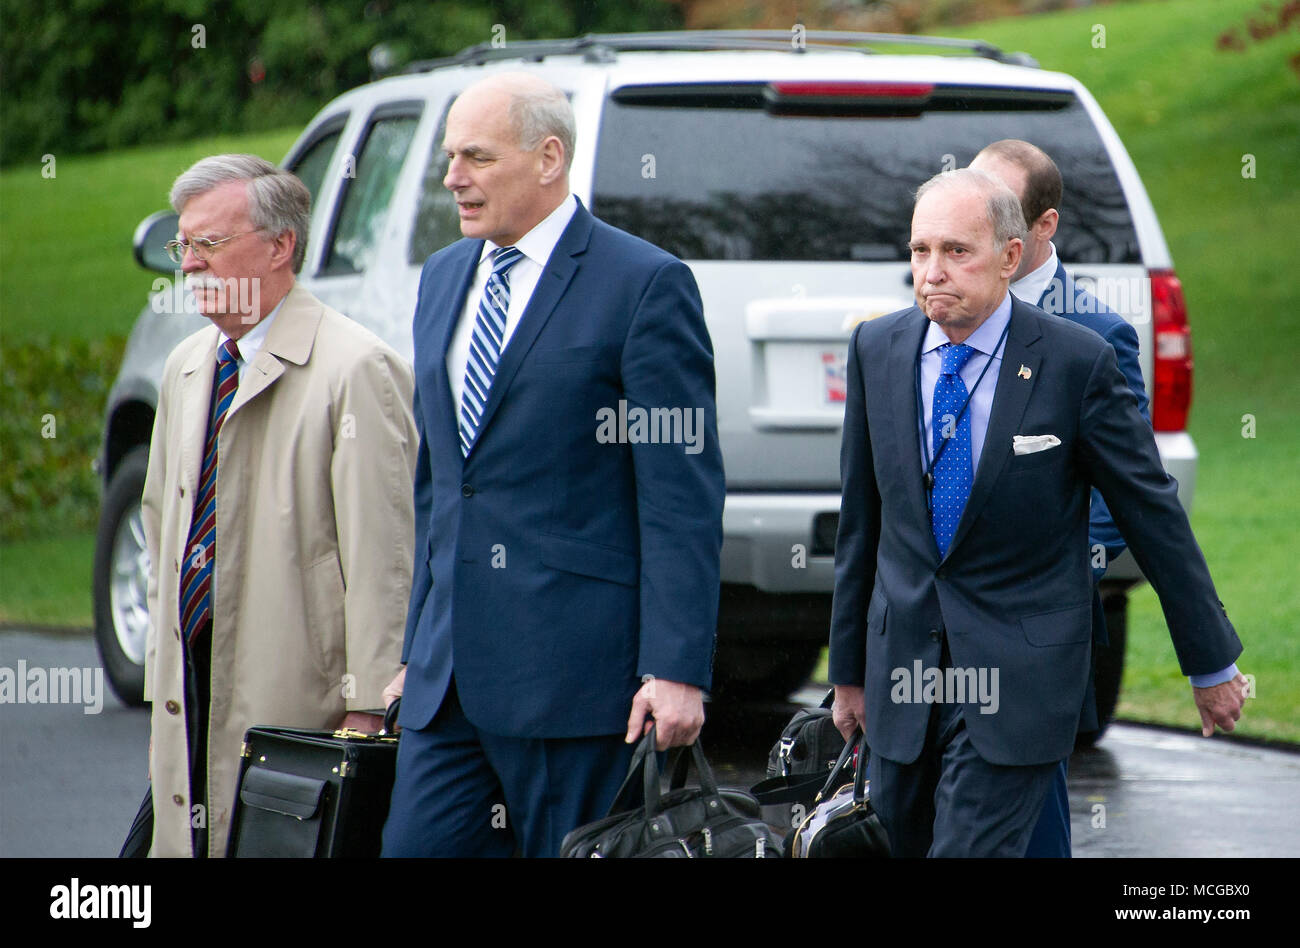 National Security Advisor John Bolton, left, White House Chief of Staff John Kelly, center, and Director of the National Economic Council Larry Kudlow walk across the South Lawn to accompany United States President Donald J. Trump as he departs the White House in Washington, DC on Monday, April 16, 2018. The President is scheduled to go to Mar-a-Lago where he will meet Prime Minister Shinzo Abe of Japan later in the week. Credit: Ron Sachs/CNP /MediaPunch Stock Photo